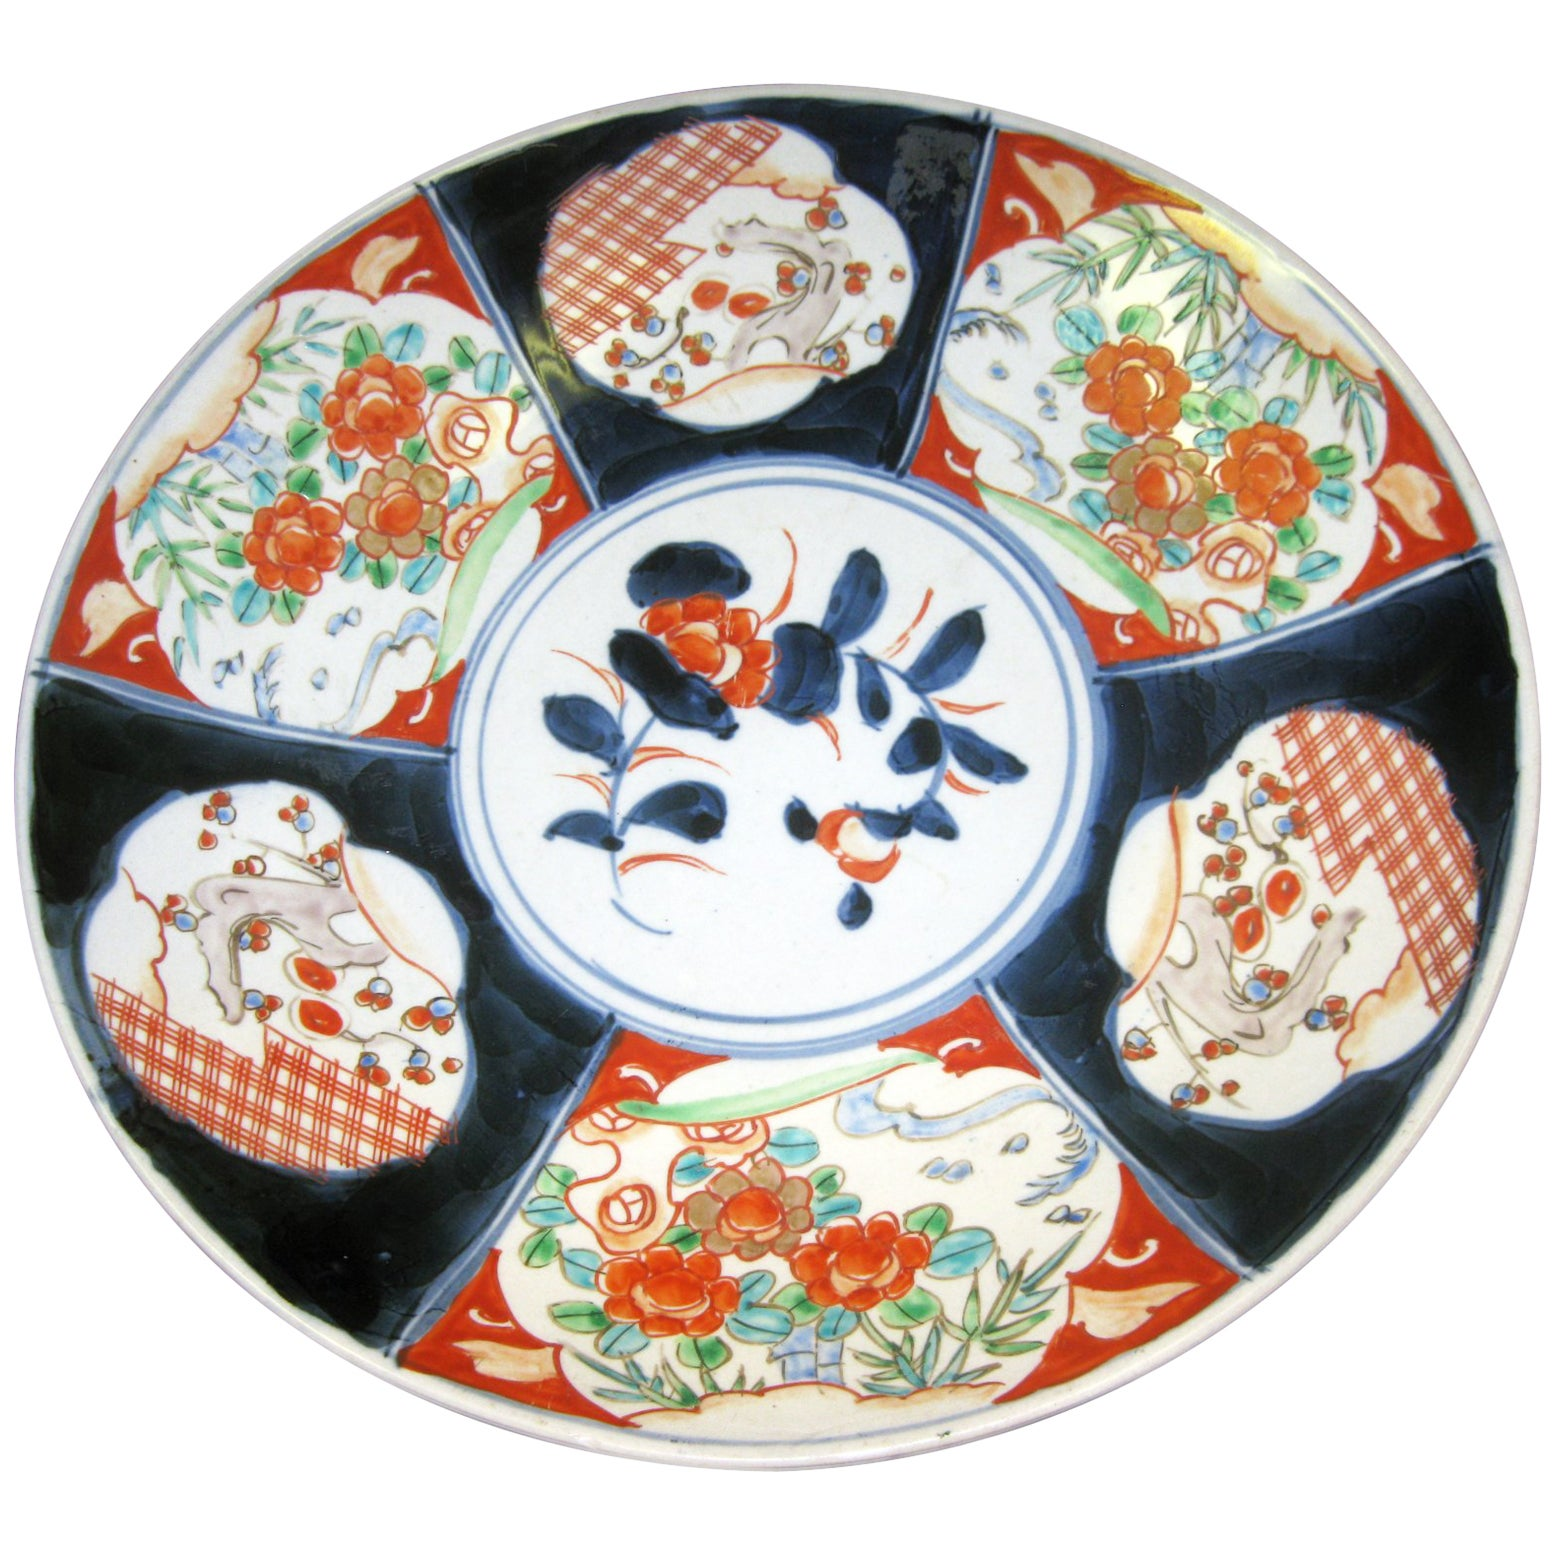 19th century Japanese Meiji Period Imari Charger